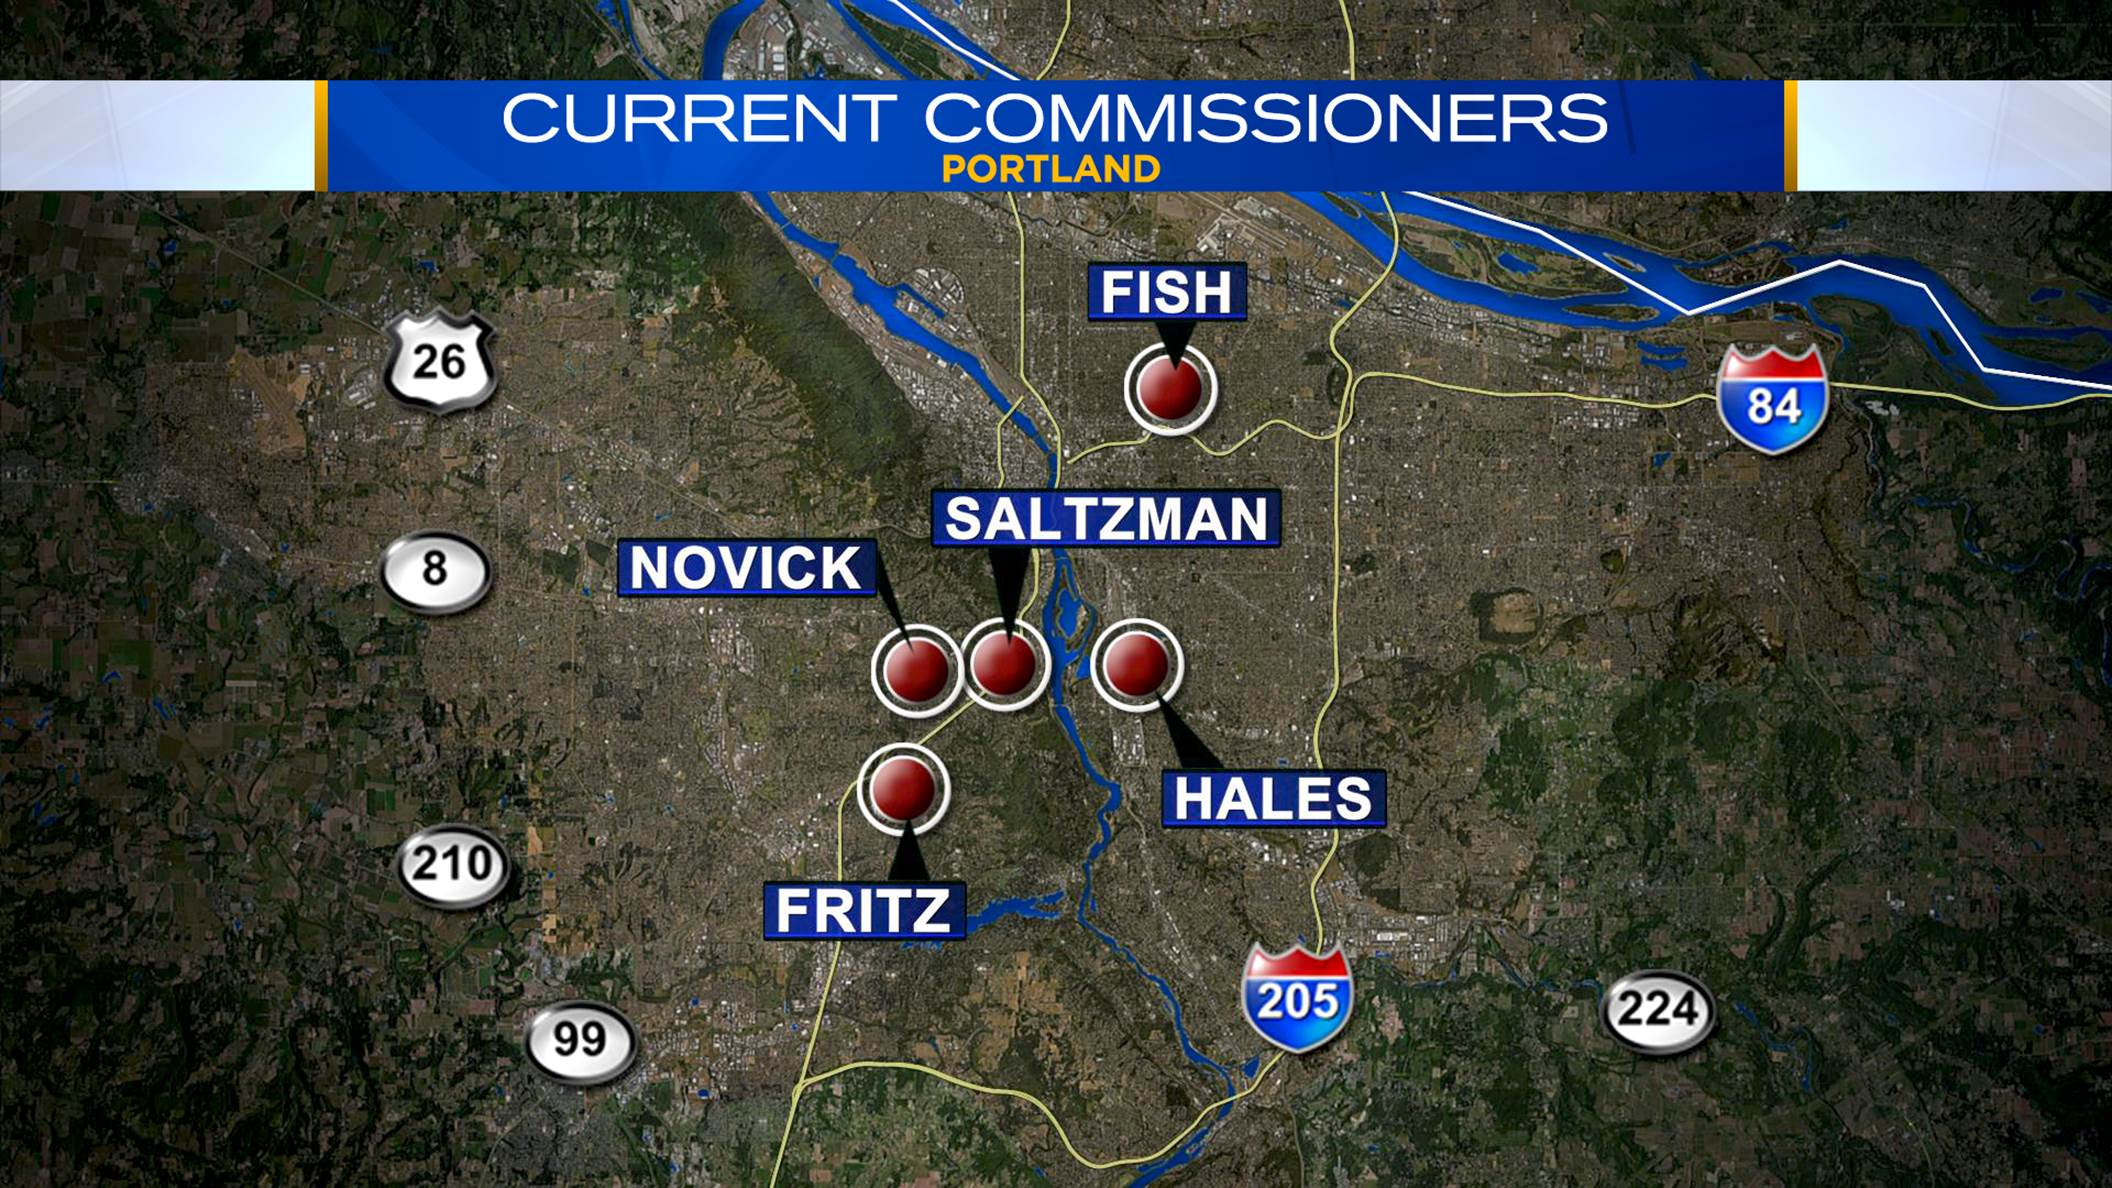 Areas where Portland's commissioners currently live, May 6, 2015. (KOIN 6 News)